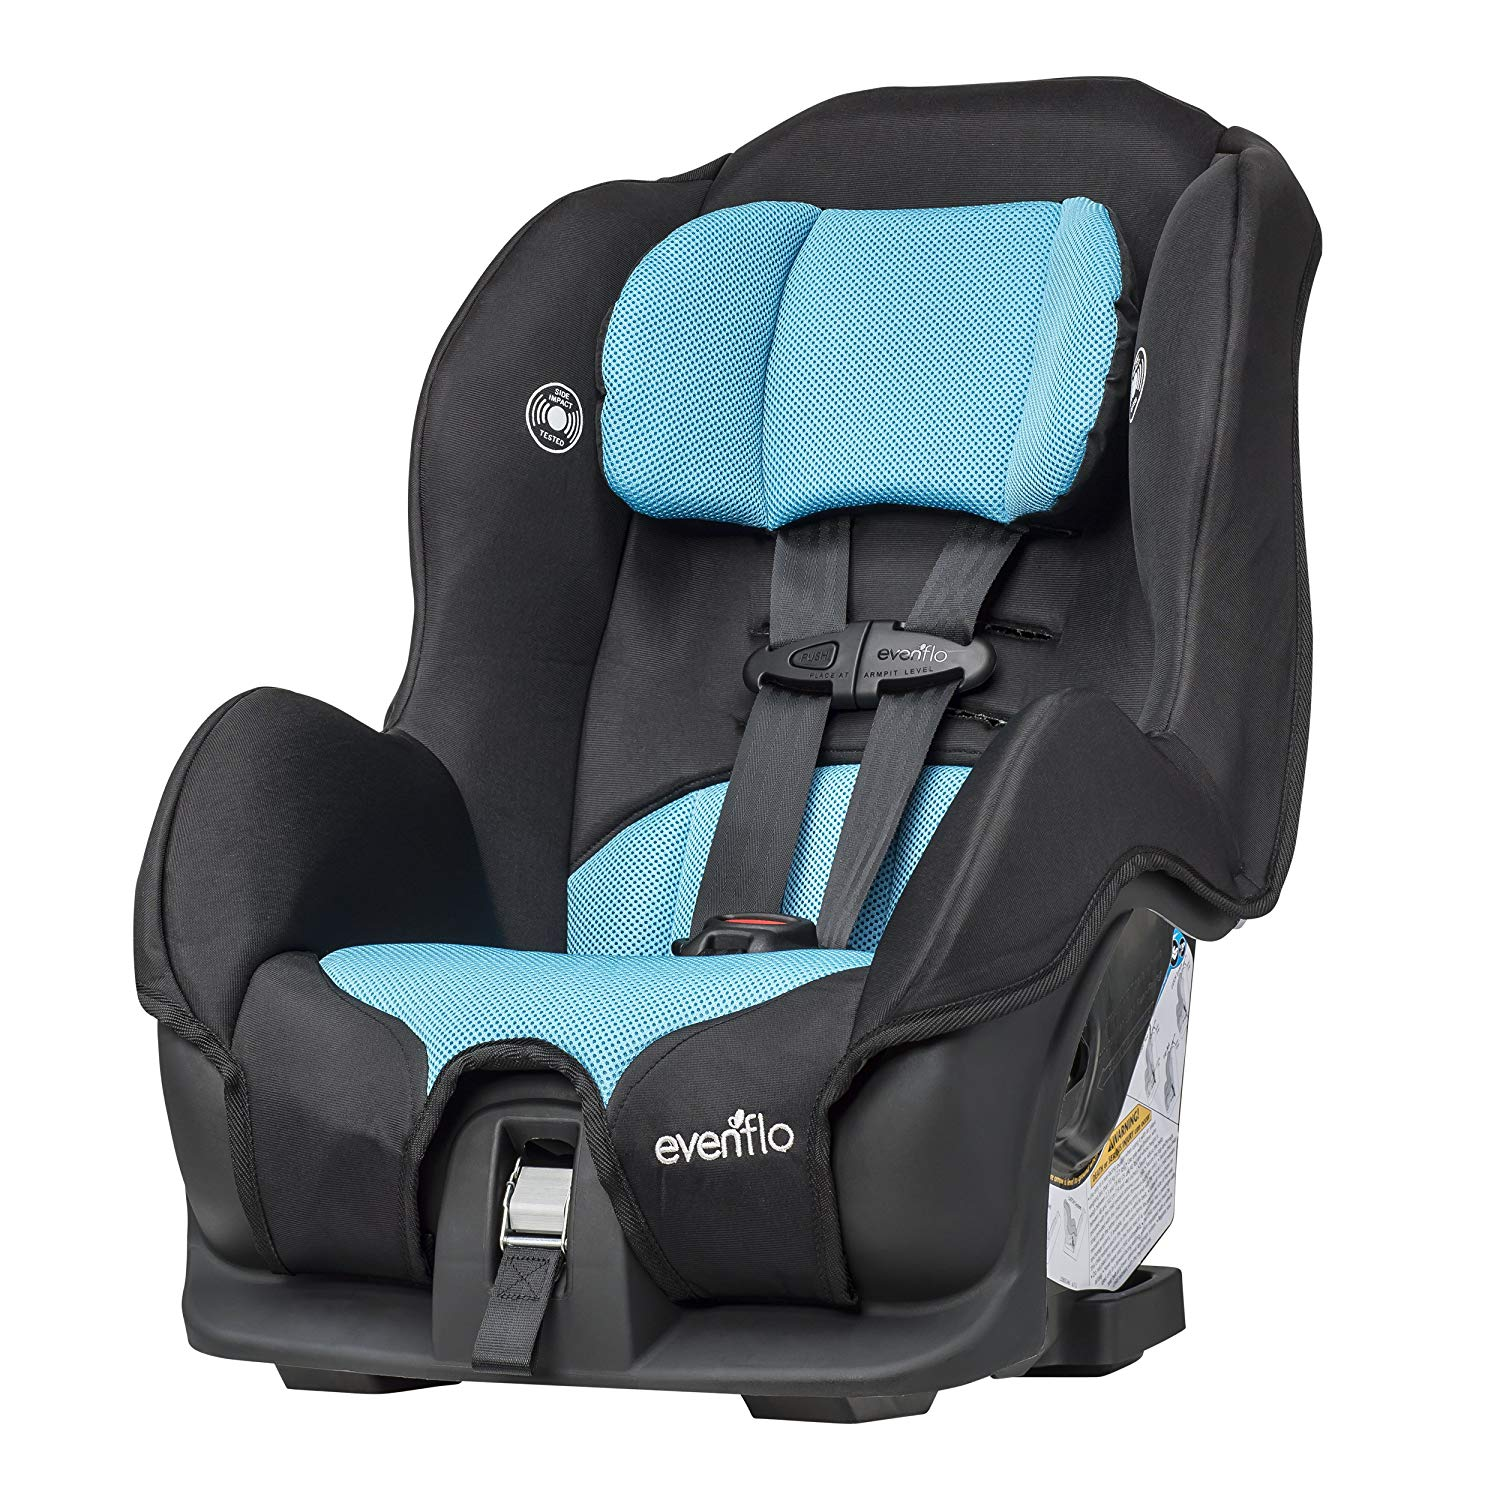 Evenflo Tribute Lx Convertible Car Seat From 90 9900 To